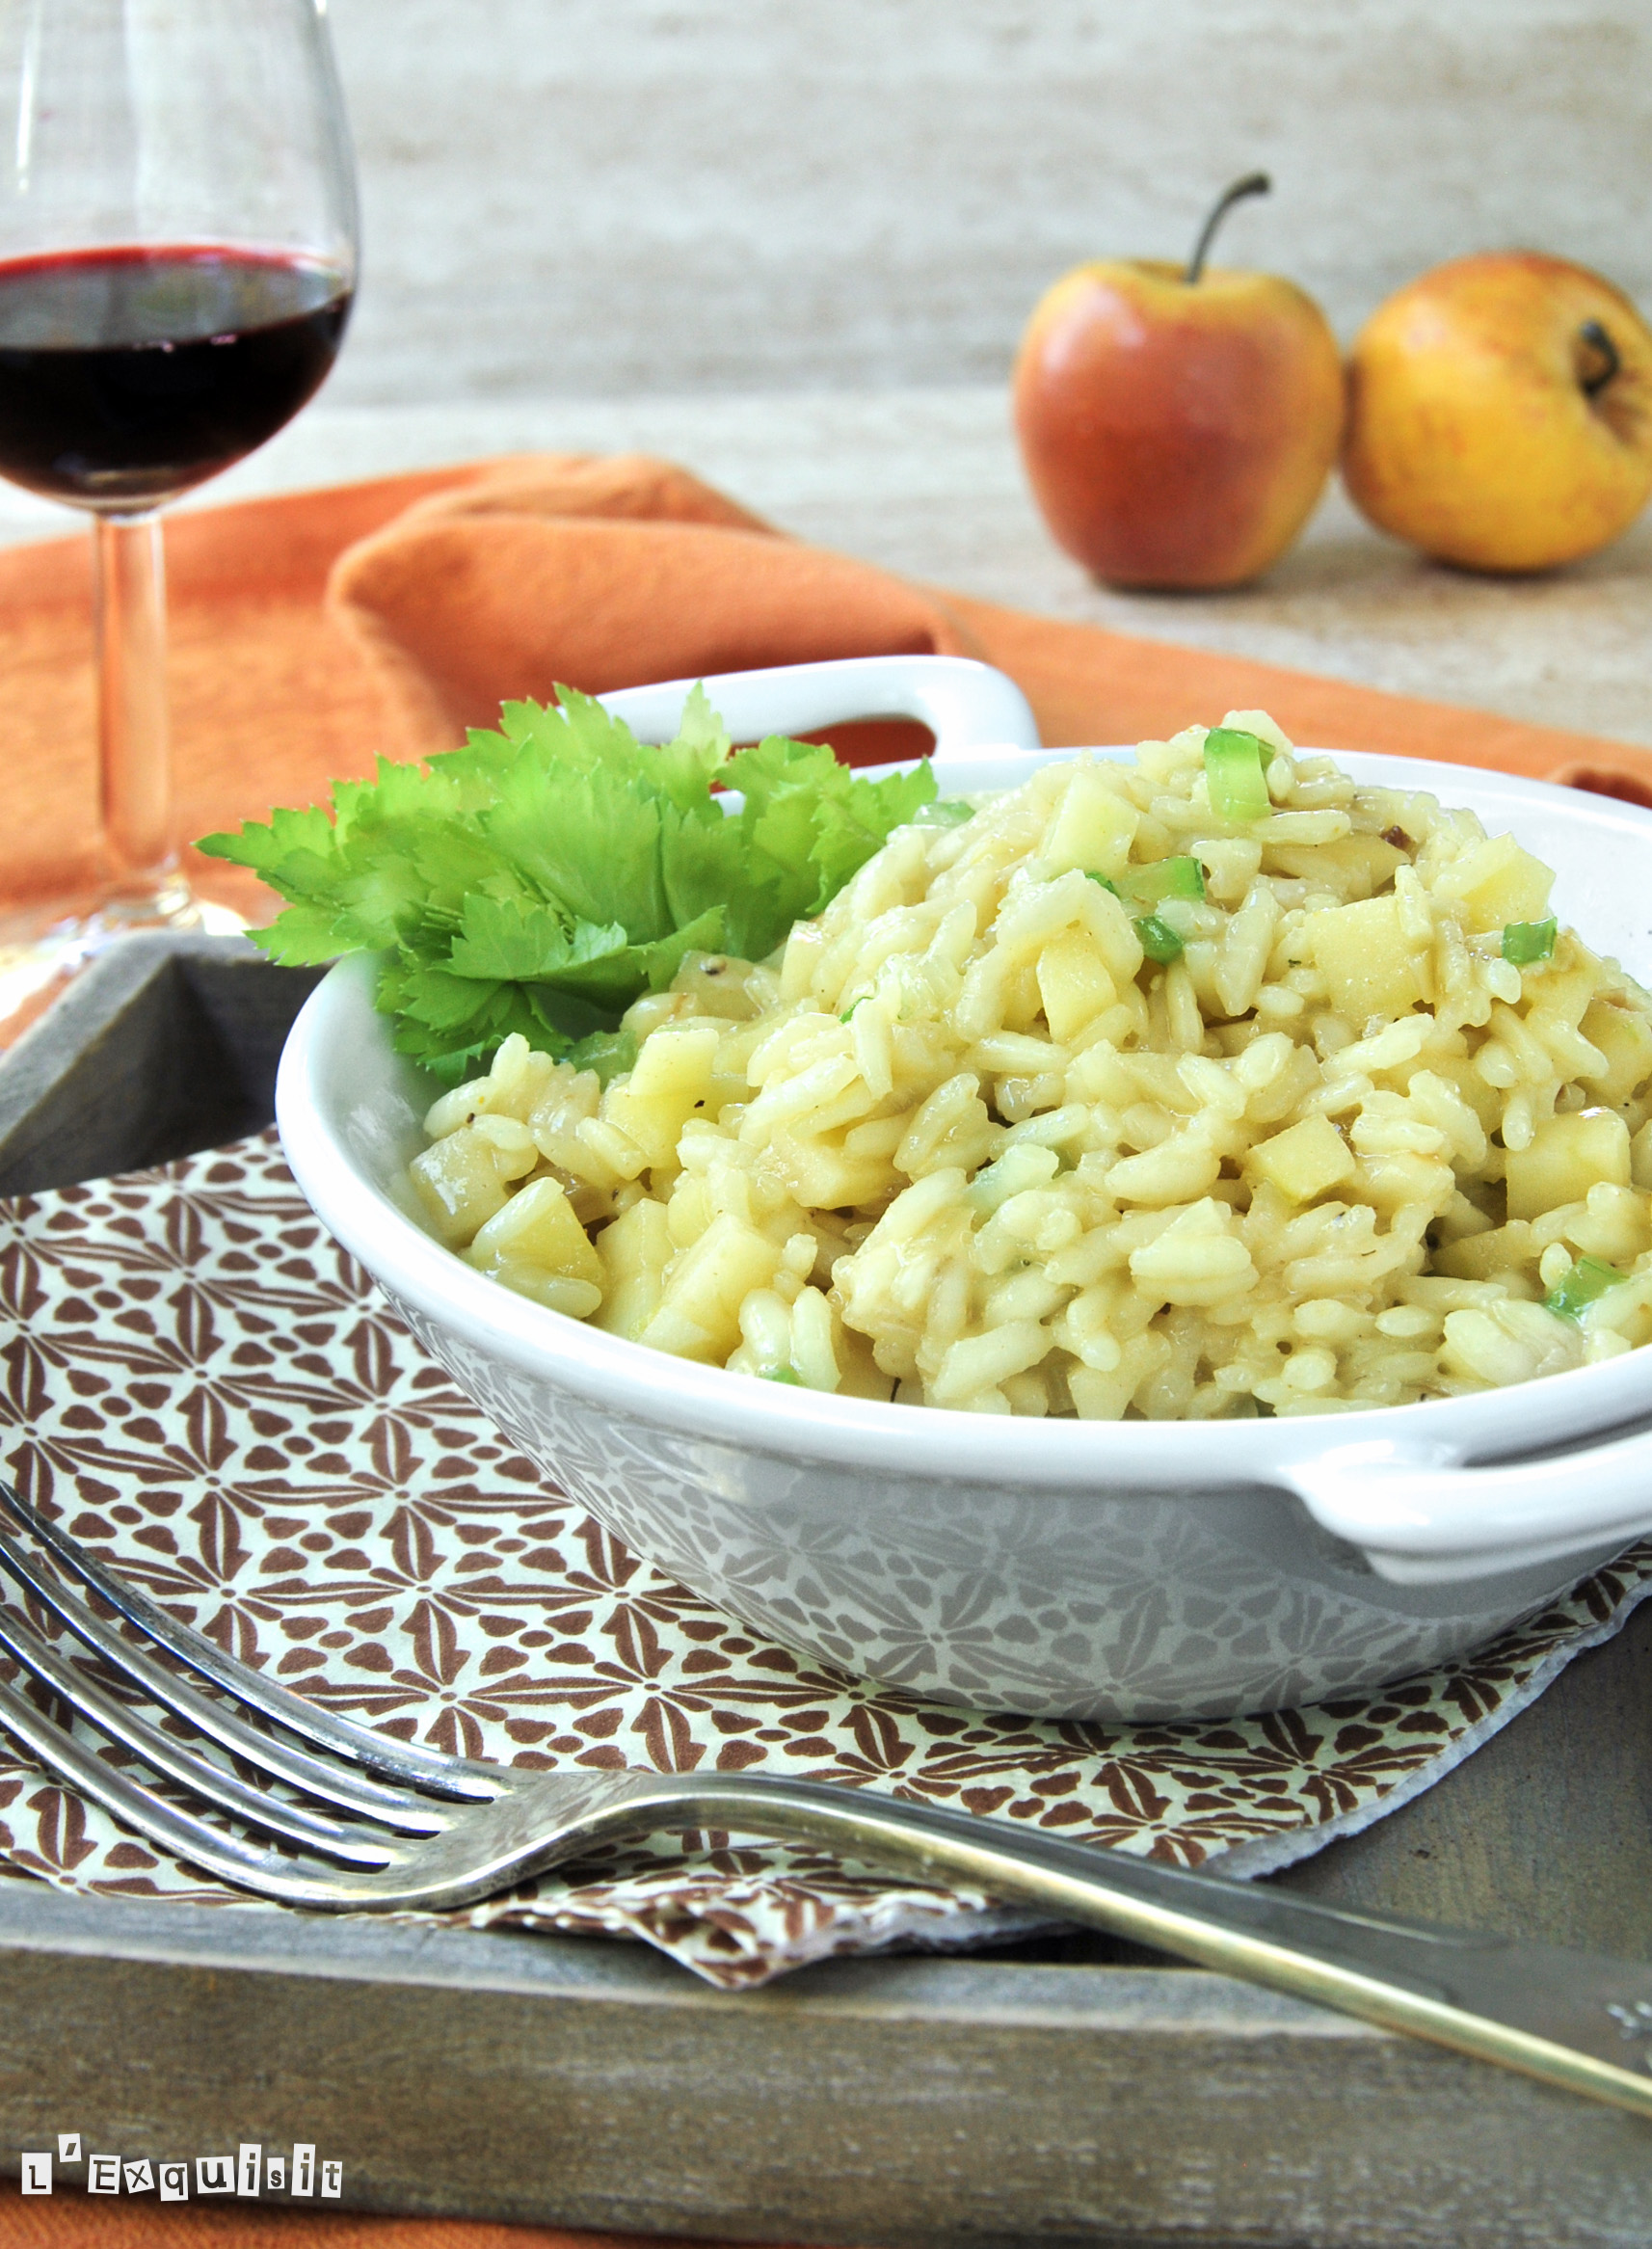 Risotto al curry con apio y manzana